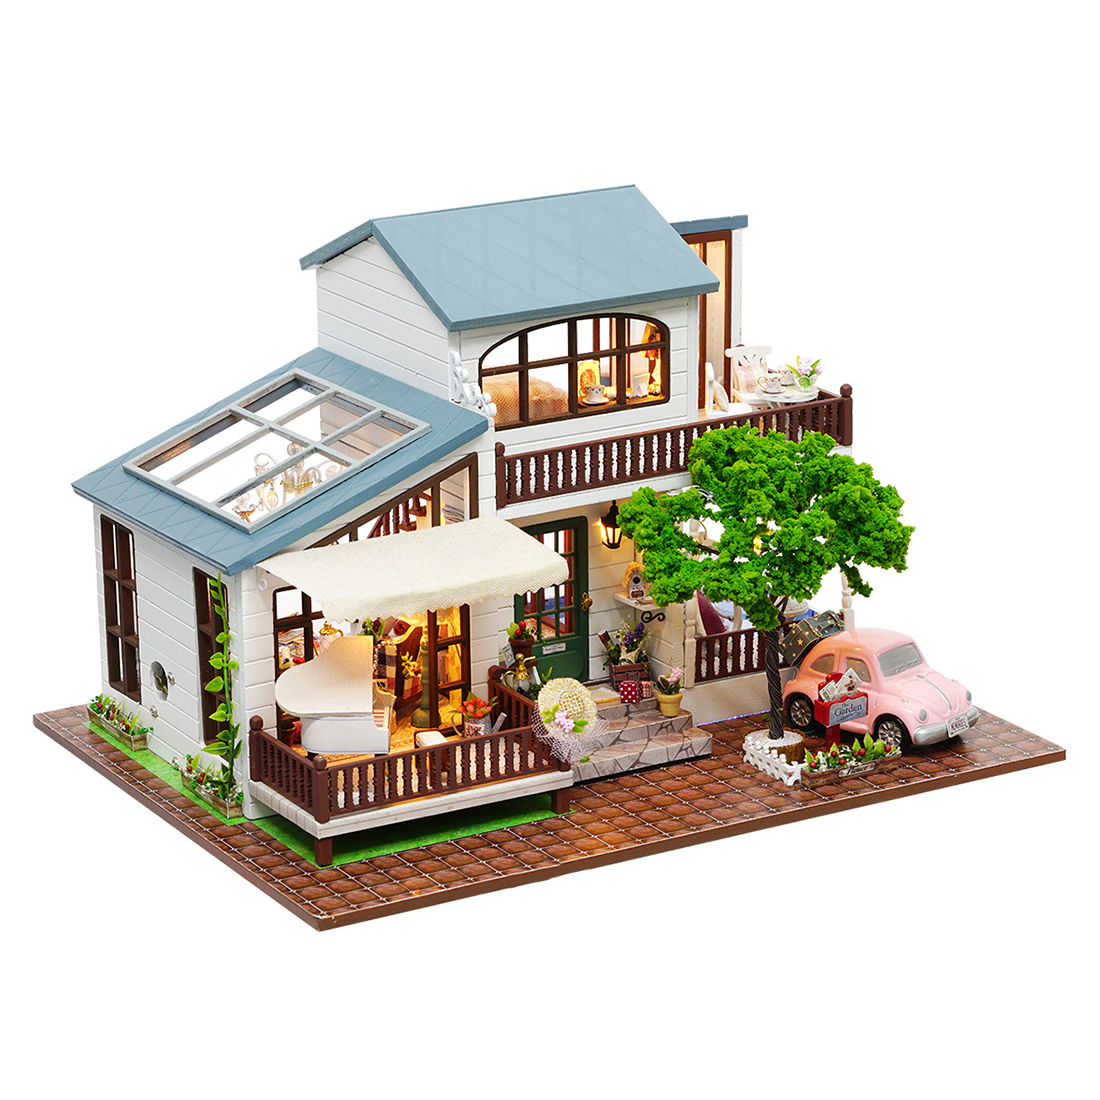 Wooden Diy Dollhouse Toy Miniature Box Puzzle Dollhouse Diy Kit Doll House Furniture London Holiday Model